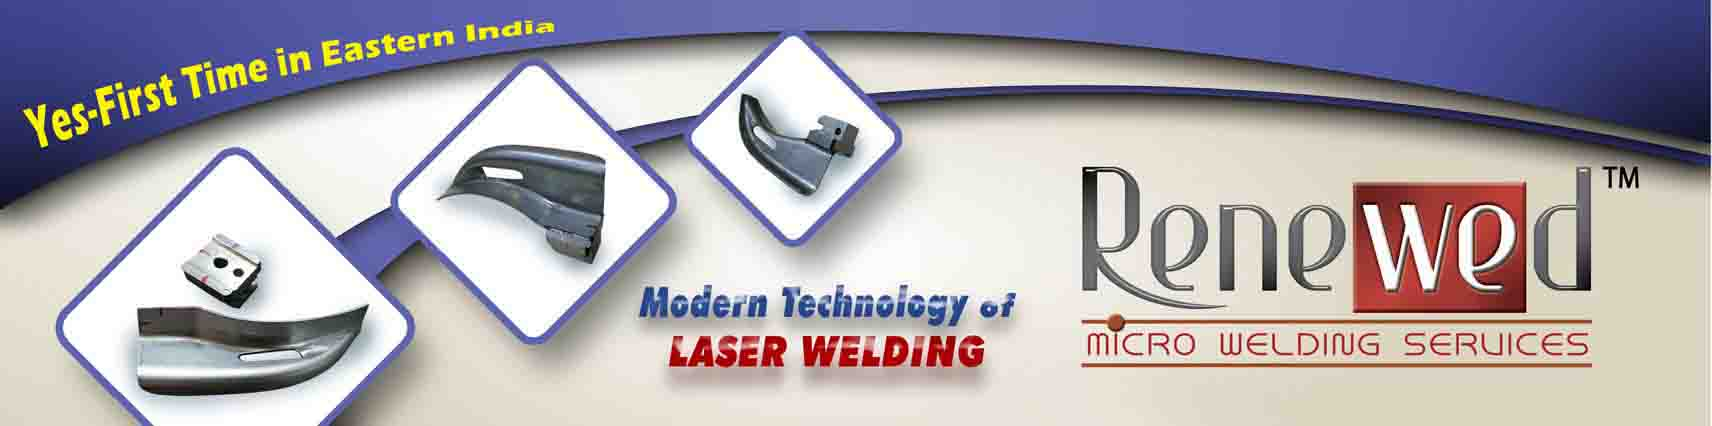 Renewed-Laser Welding Services